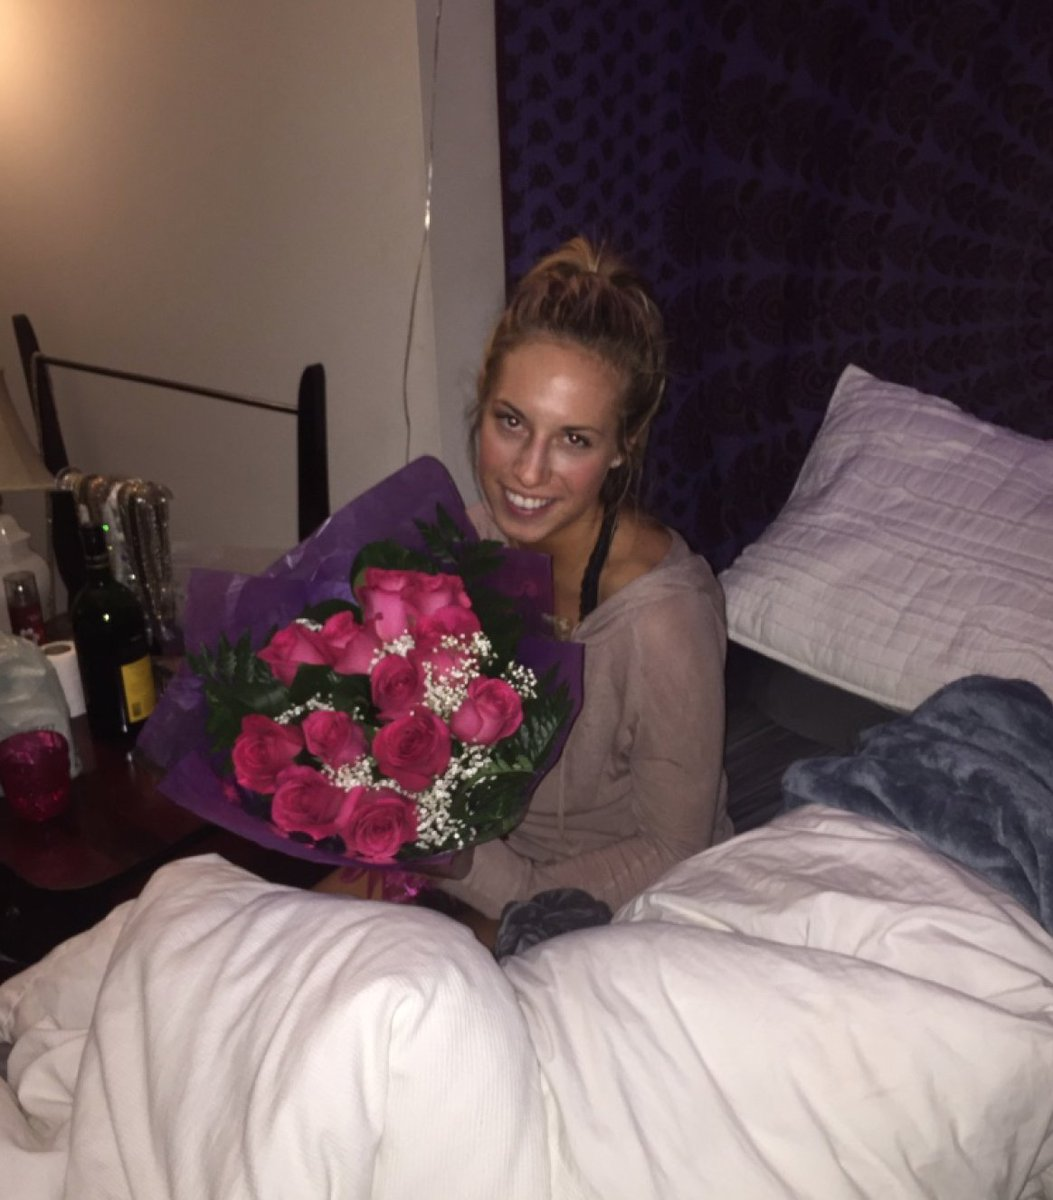 me at 21 after forgiving my ex for cheating on me bc he bought me flowers https://t.co/LcOZ2y0tNt